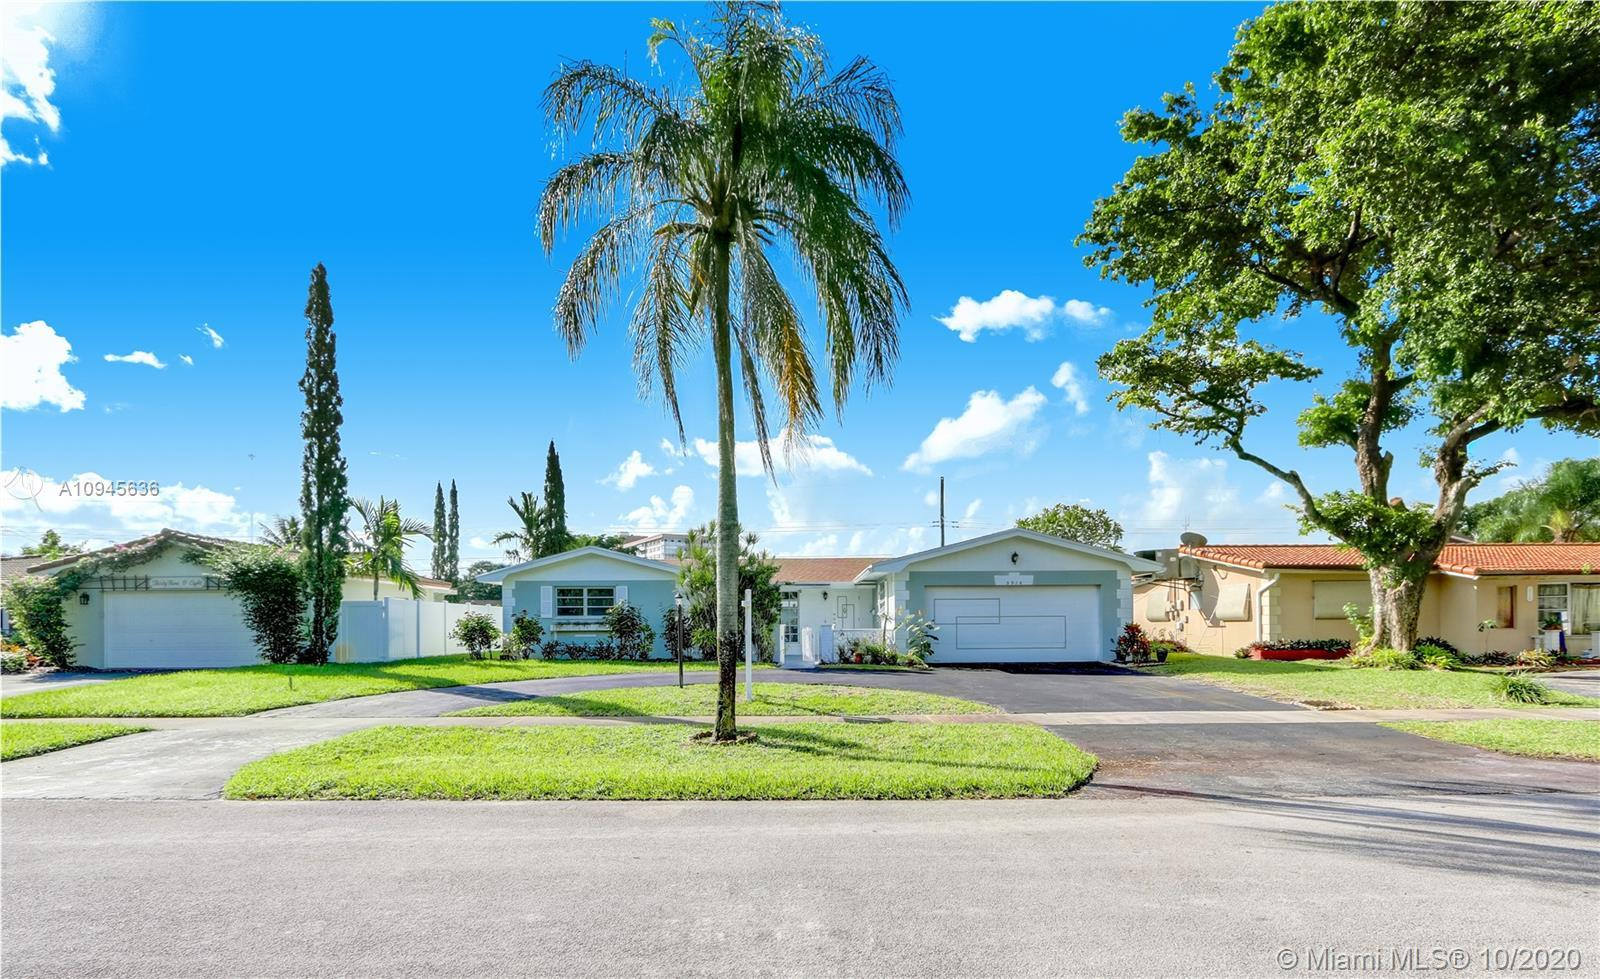 Enjoy beautiful days in this spacious one story pool home in Hollywood Hills!  Property features  3